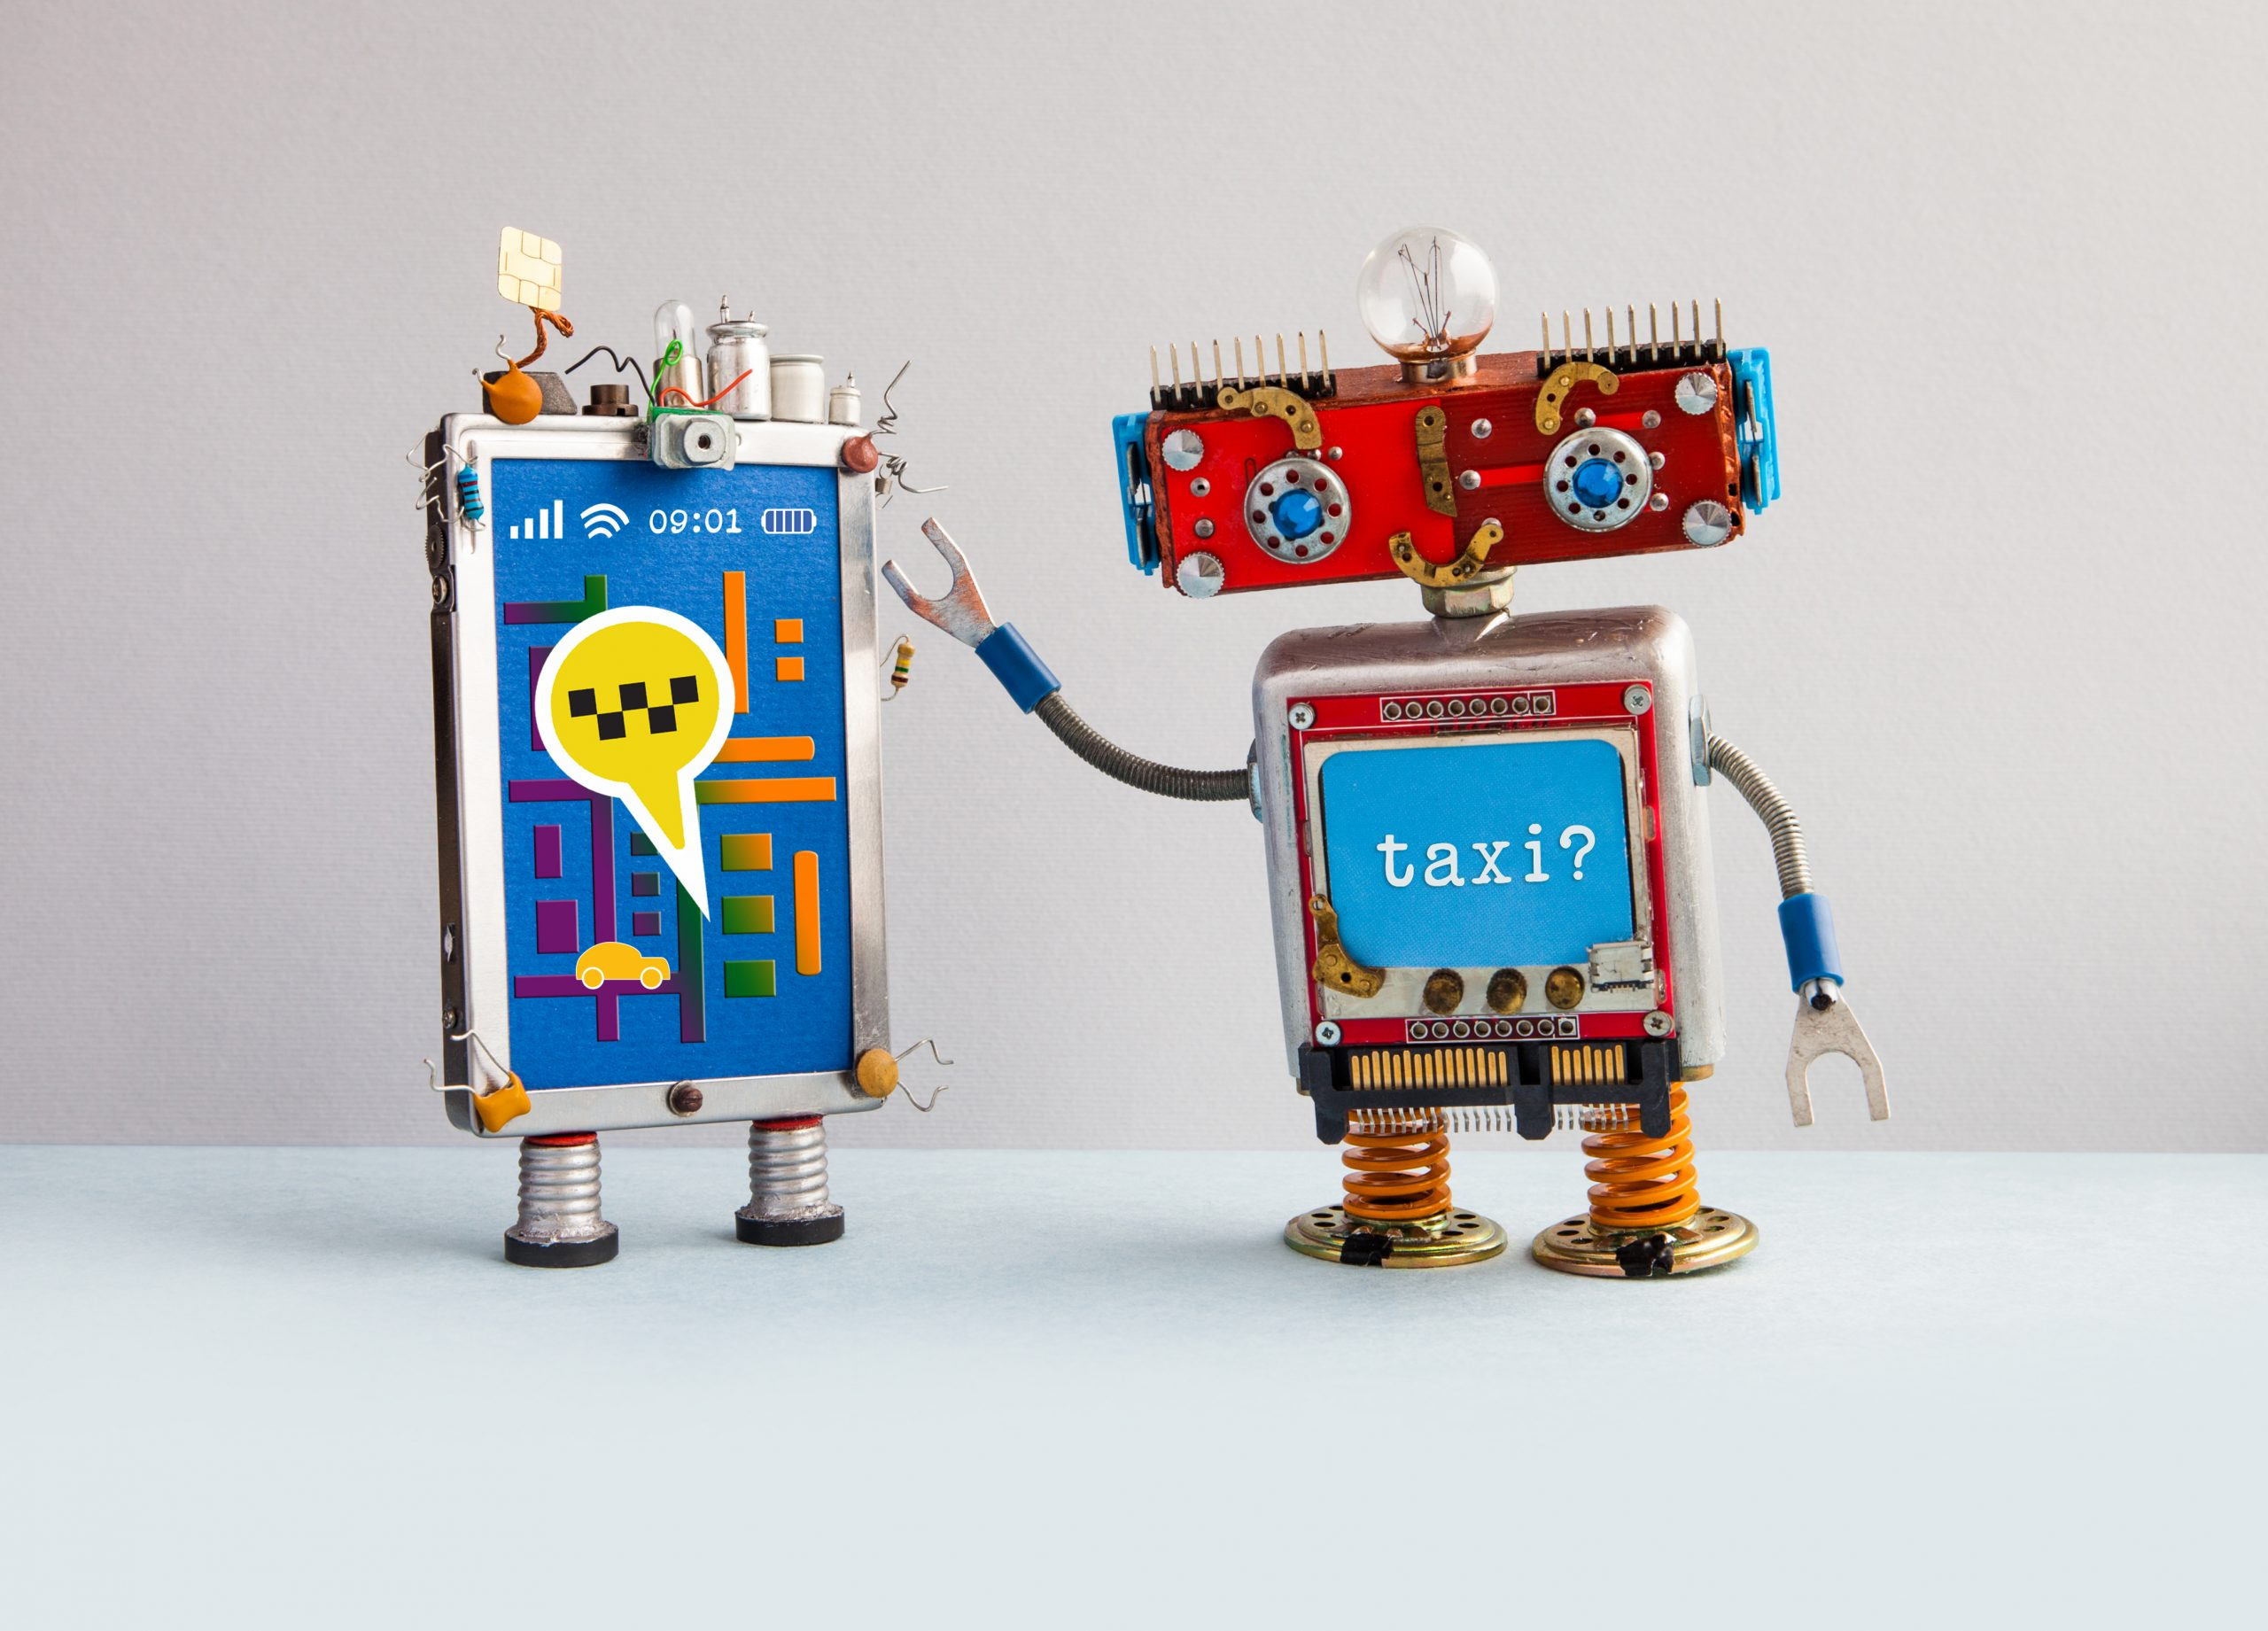 5 Ways AI and Machine Learning Will Help Digital Advertising